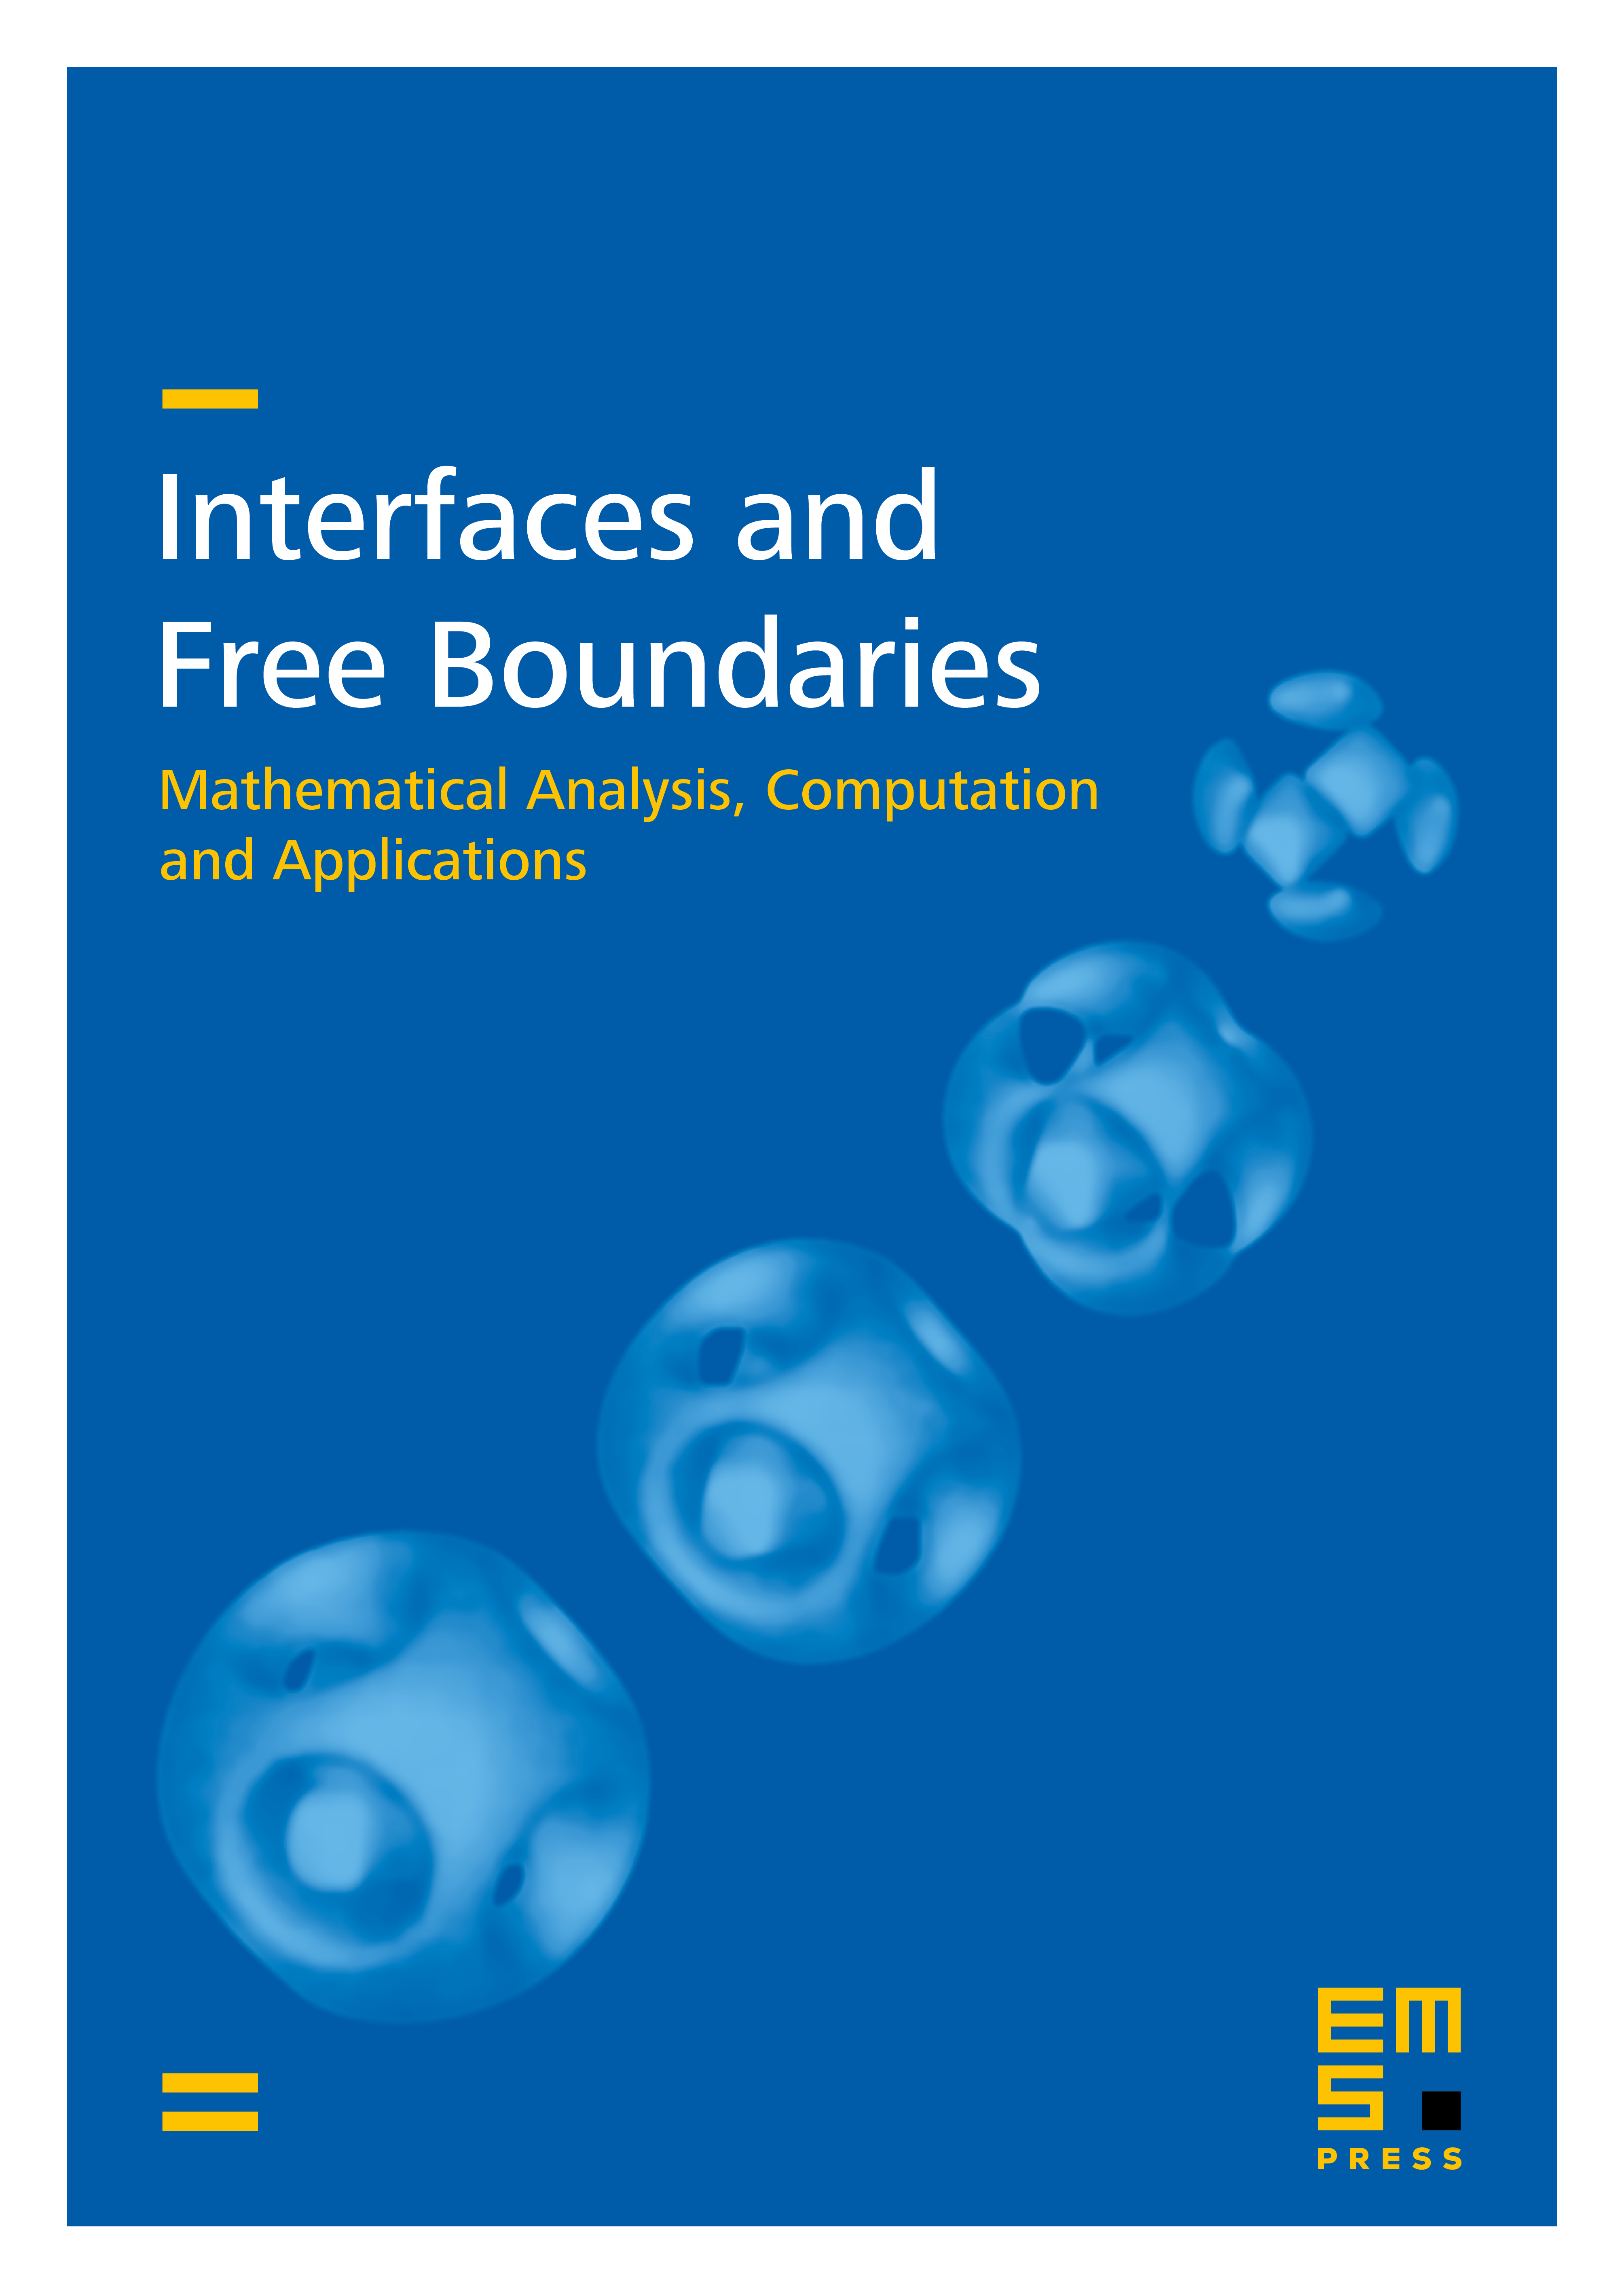 Interfaces and Free Boundaries cover